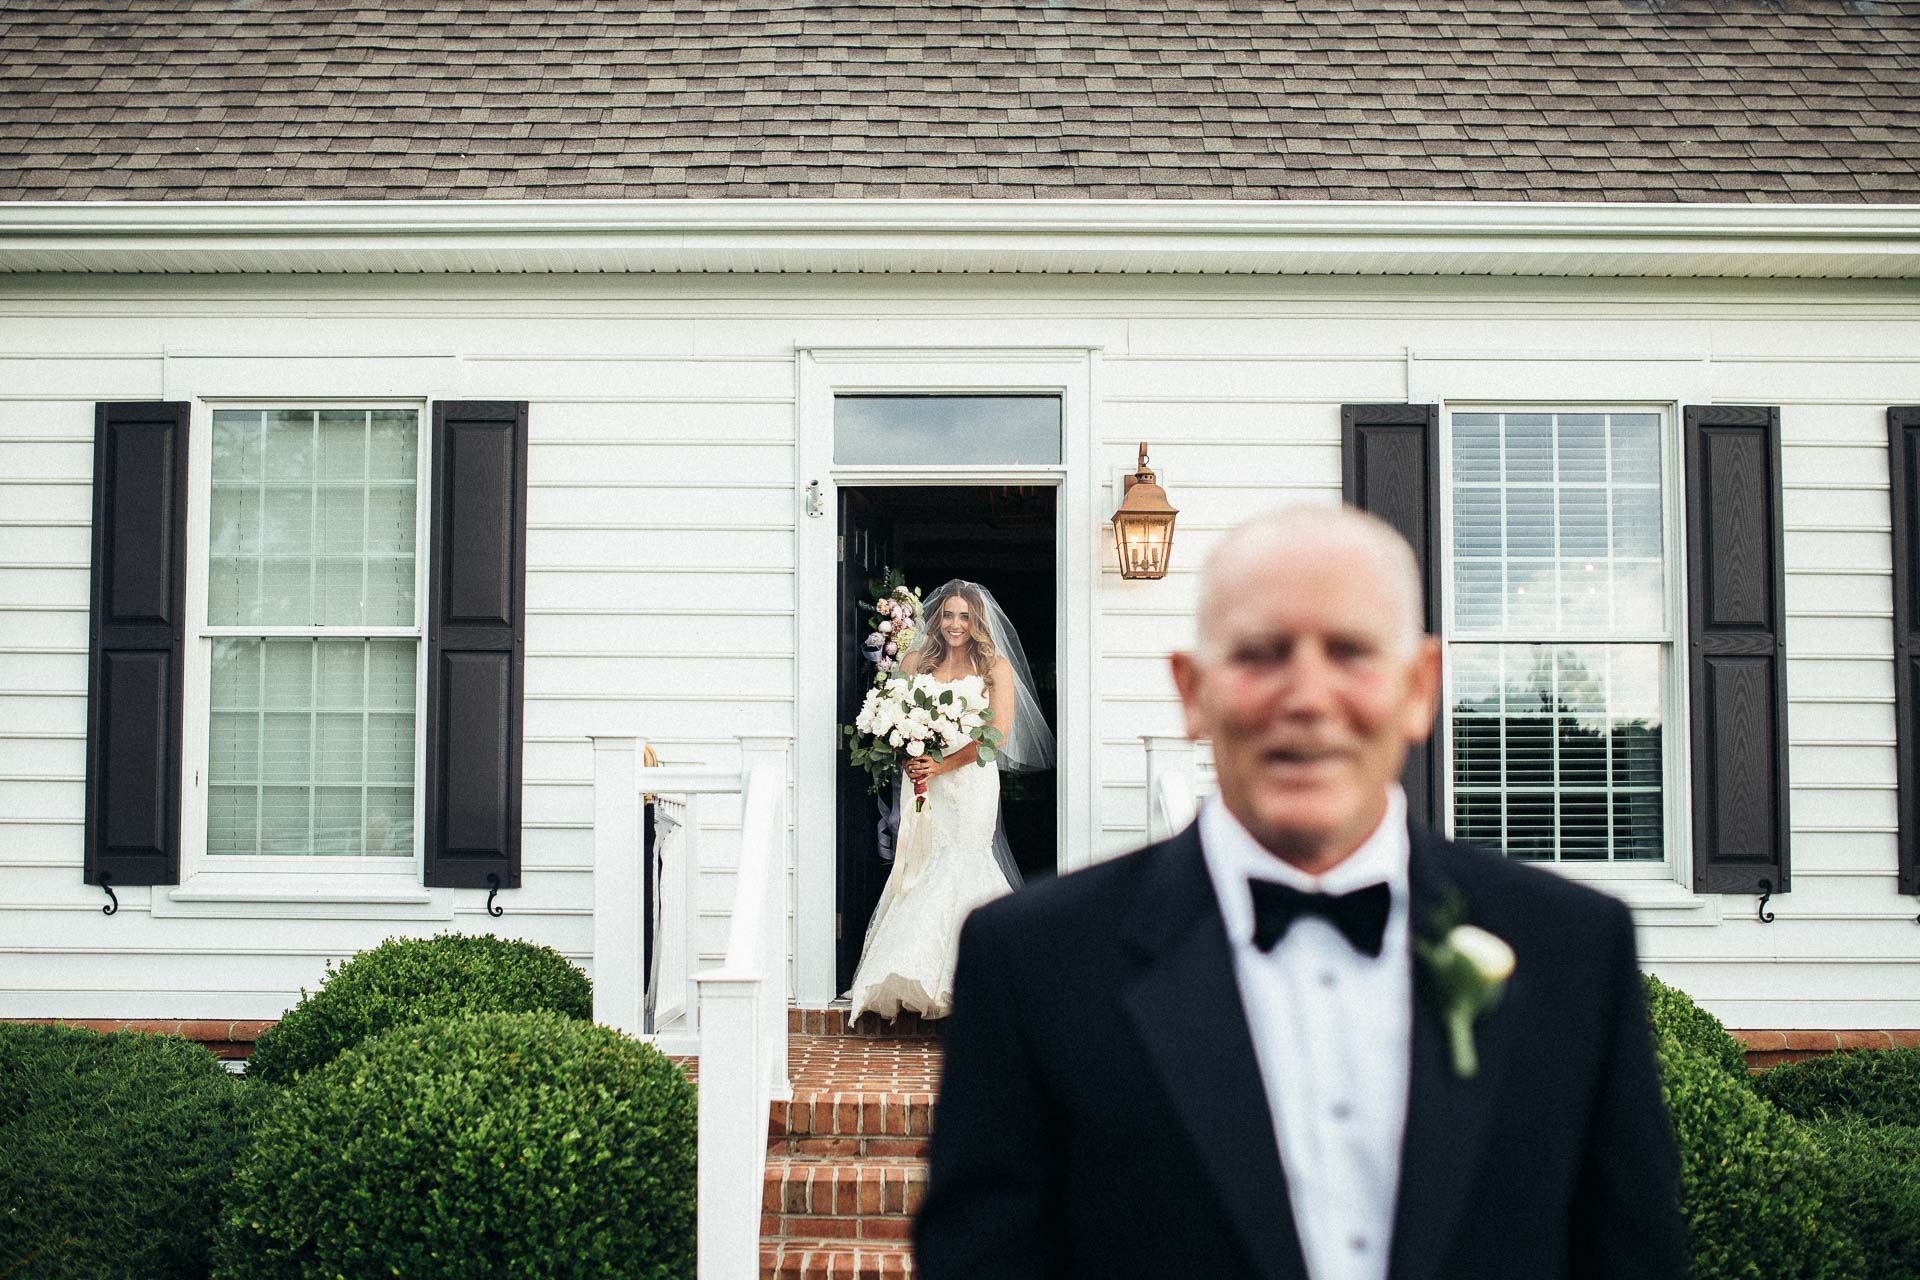 Shawna_Josh_Wedding_Easton_Maryland_JeanLaurentGaudy_059